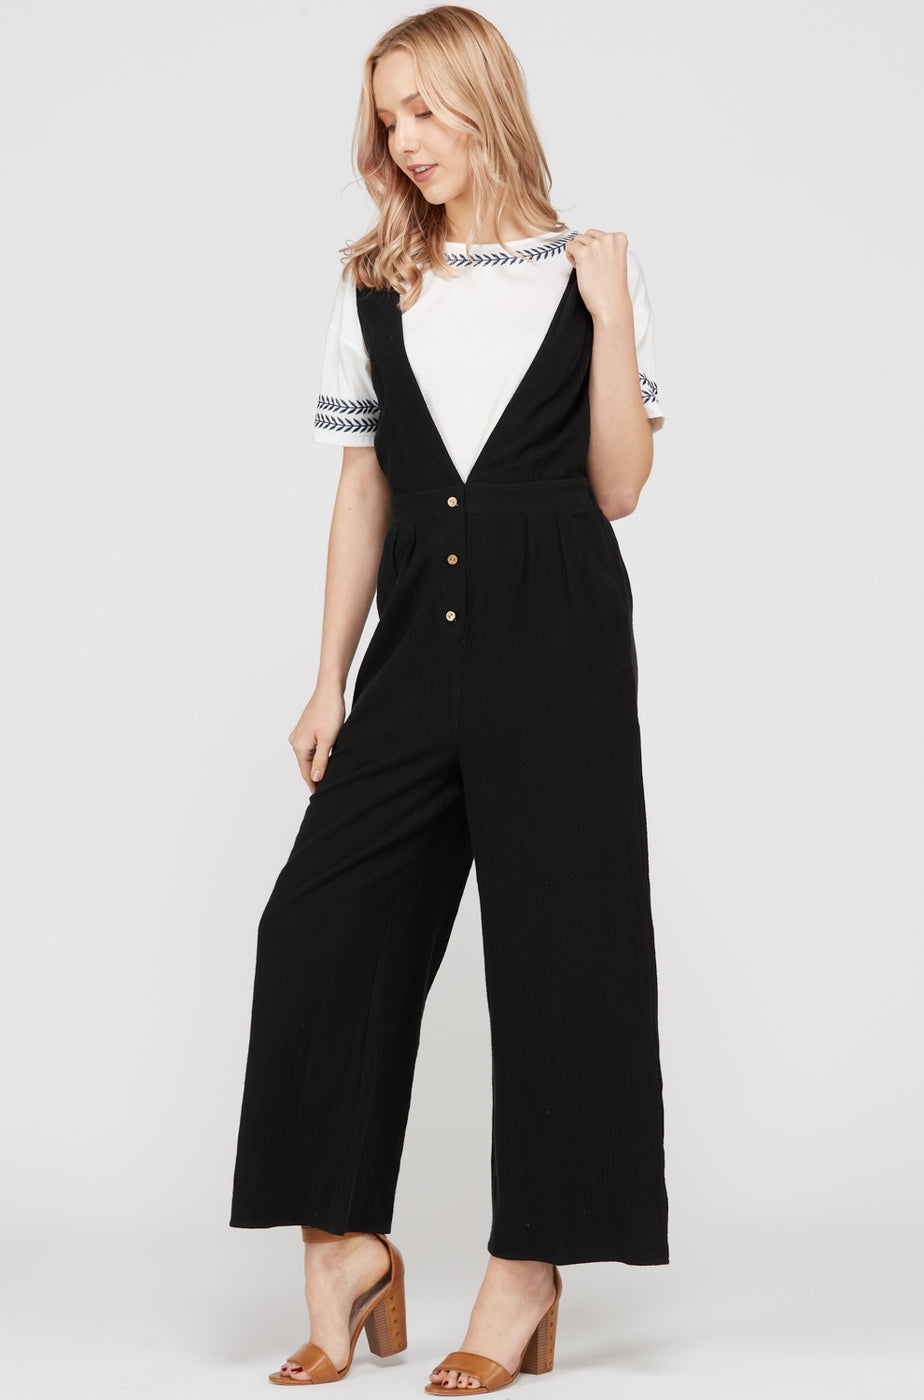 Lyric Romper With Front Button Down V-Neck In Black Siin Bees